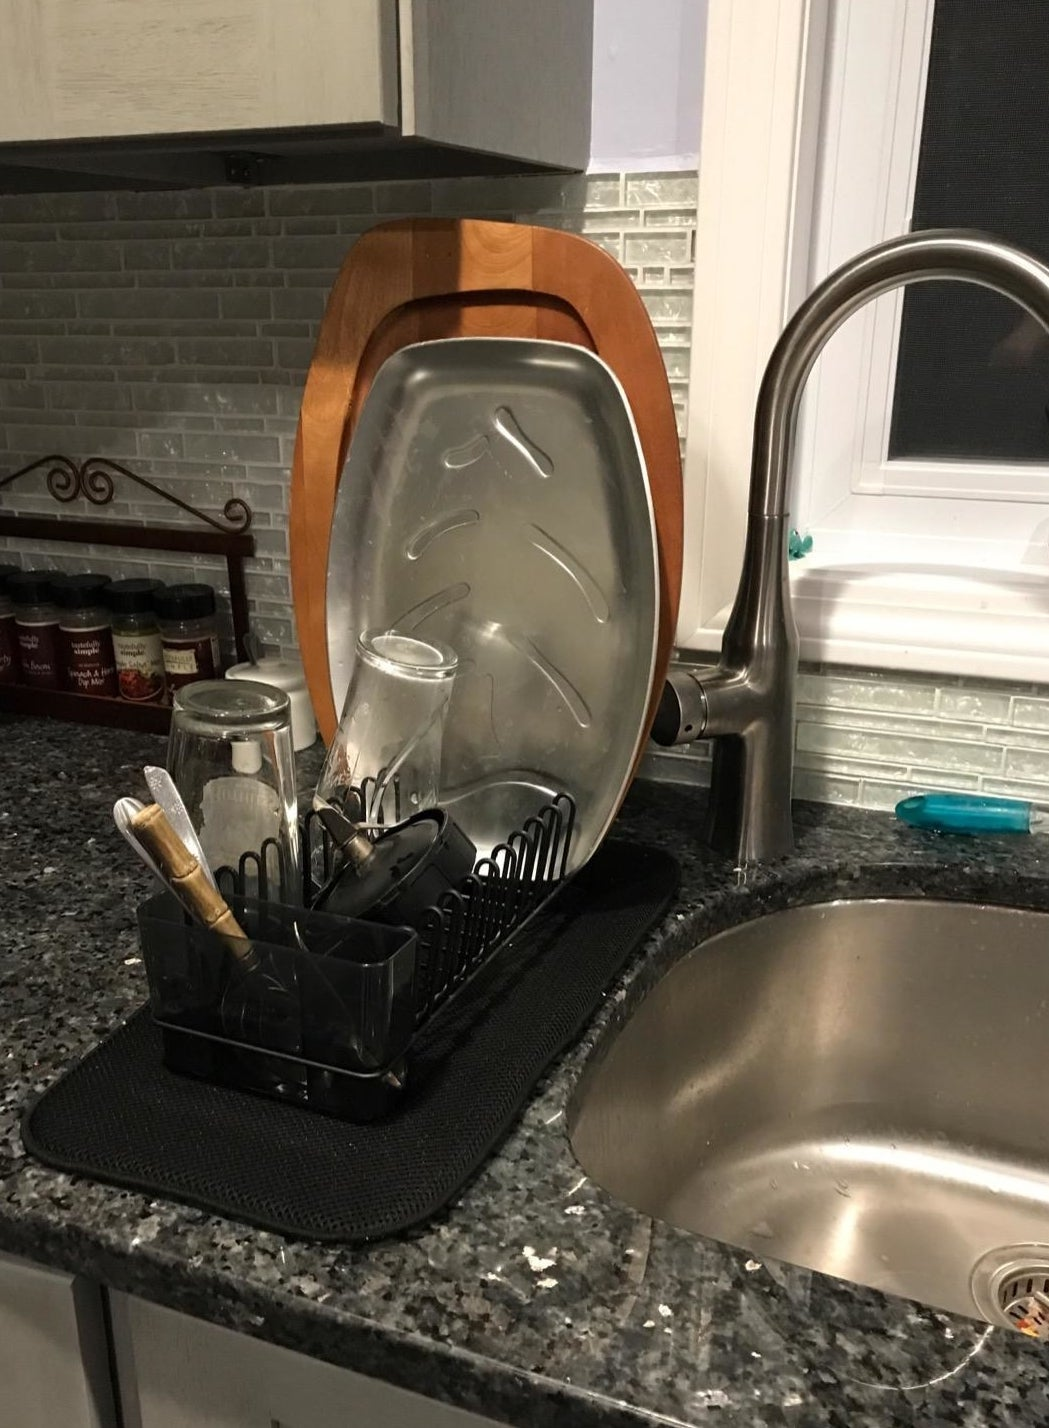 Reviewer picture of the small dish drying rack with the black mat under it with assorted dishes in it next to a sink